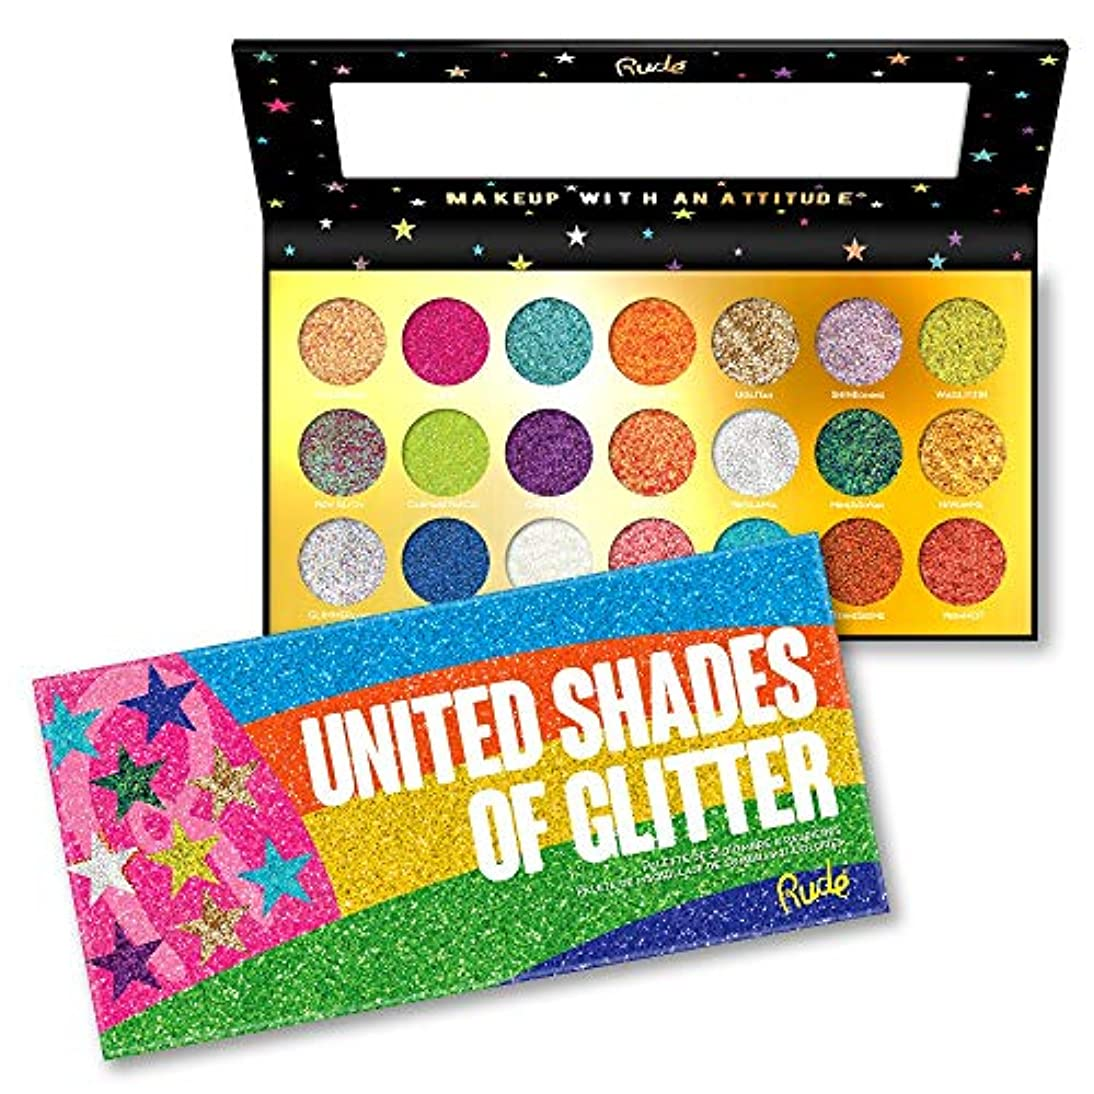 球状パートナーバックRUDE? United Shades of Glitter - 21 Pressed Glitter Palette (並行輸入品)